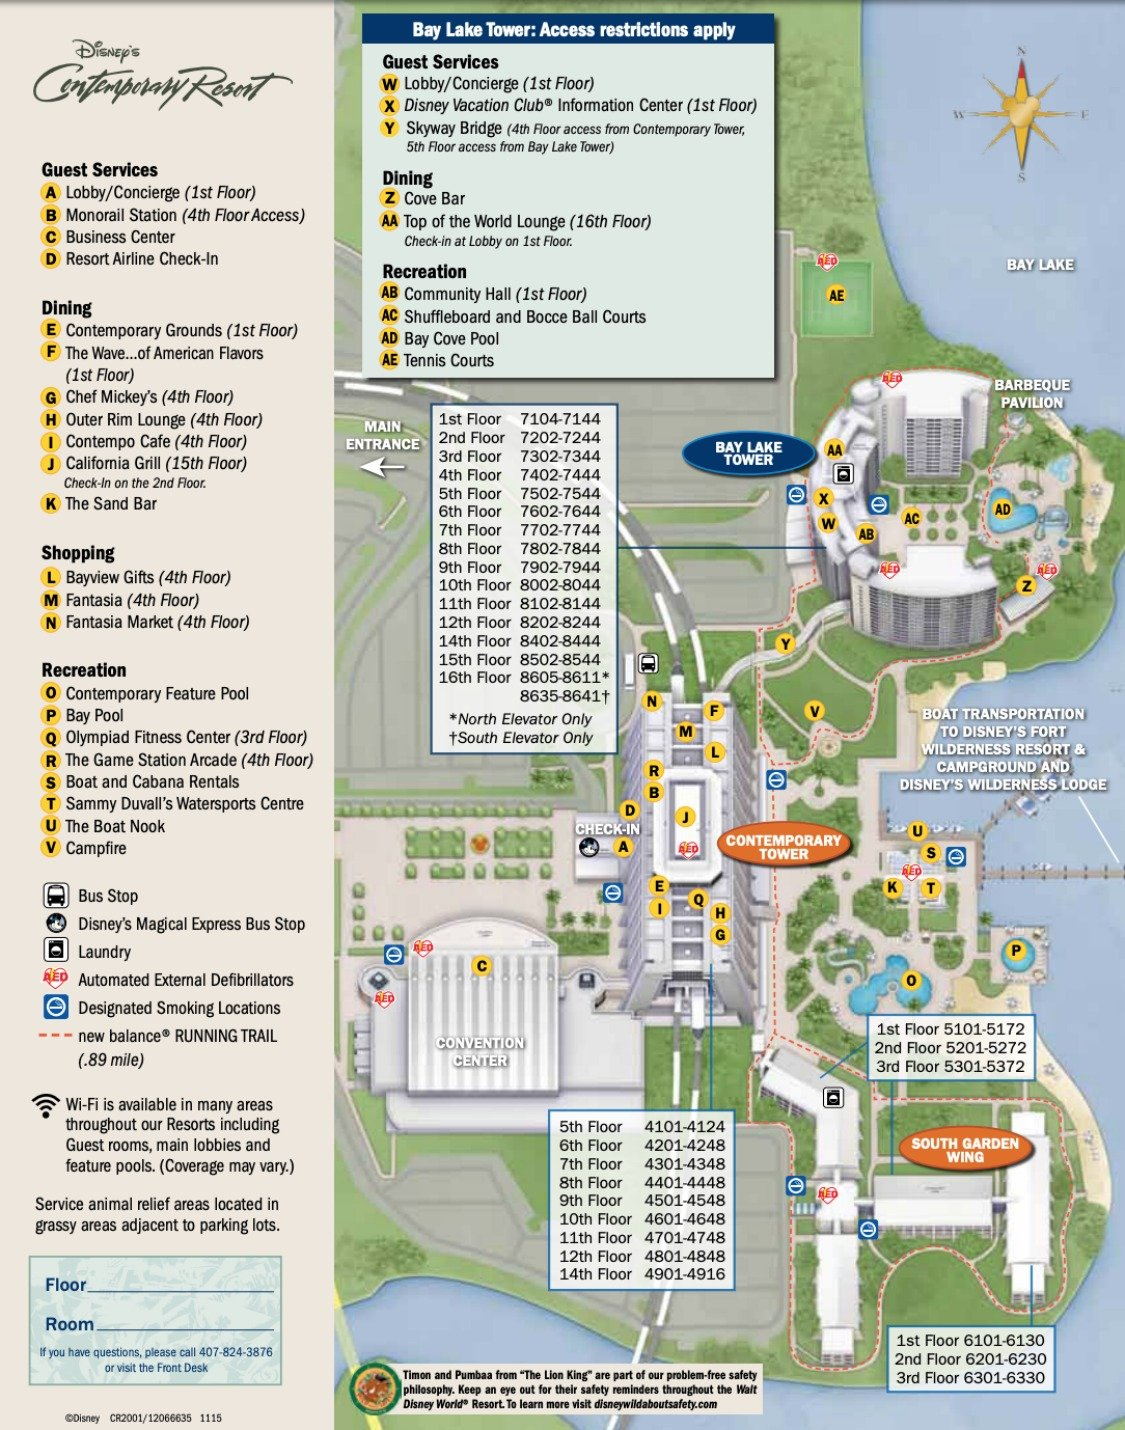 Disney's Contemporary Resort Map - wdwinfo.com on disney rides, disney resorts and grounds, disney events, harry potter grounds map, carnival grounds map,